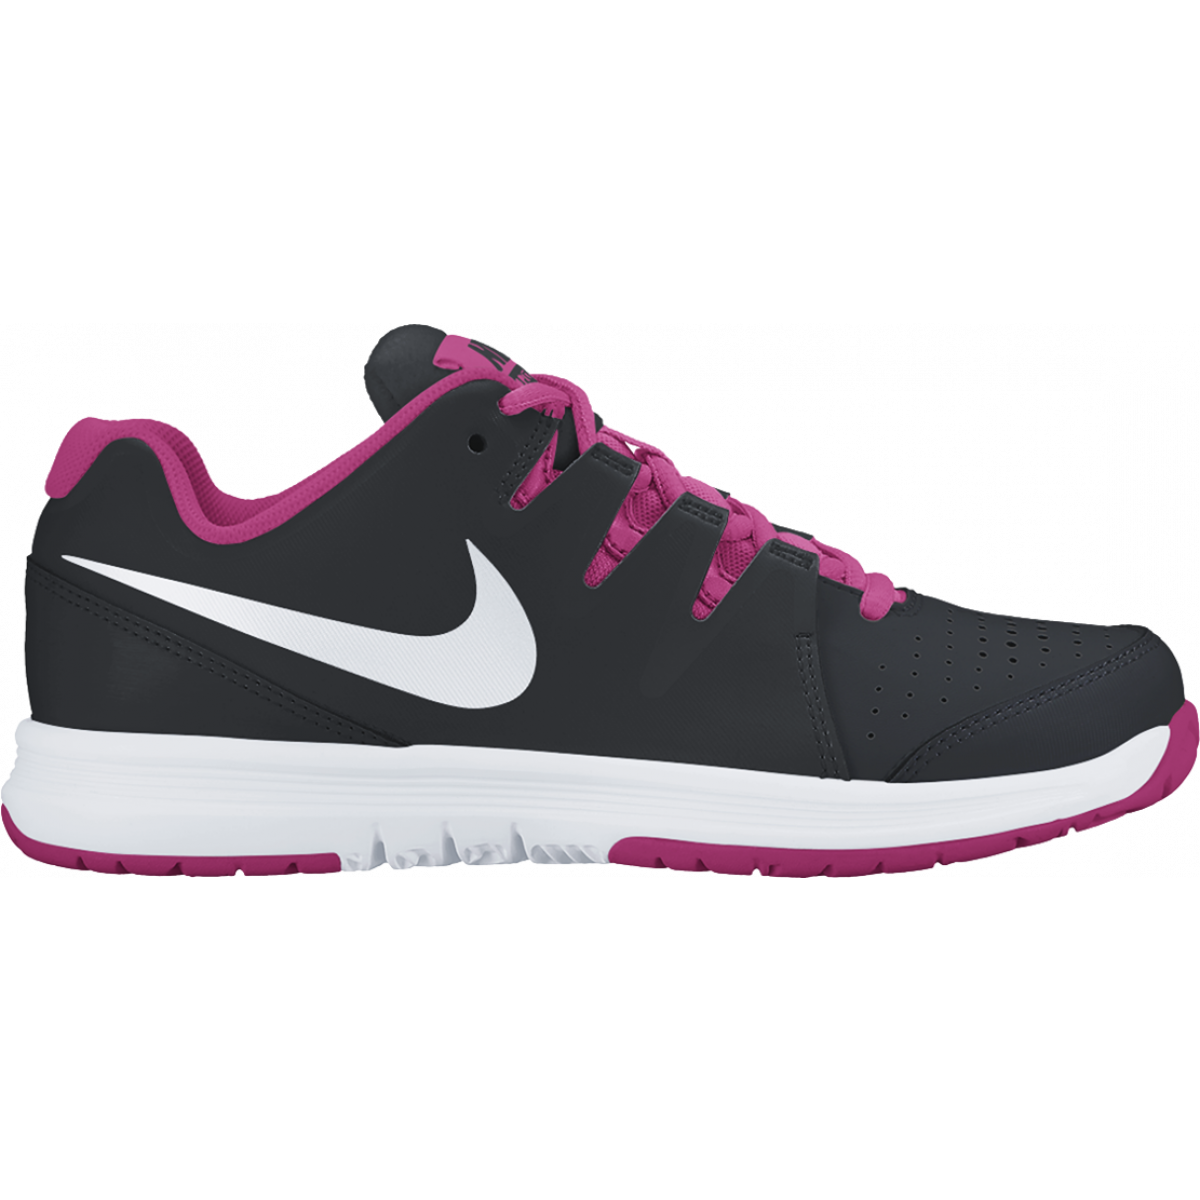 Chaussure tennis nike vapor junior